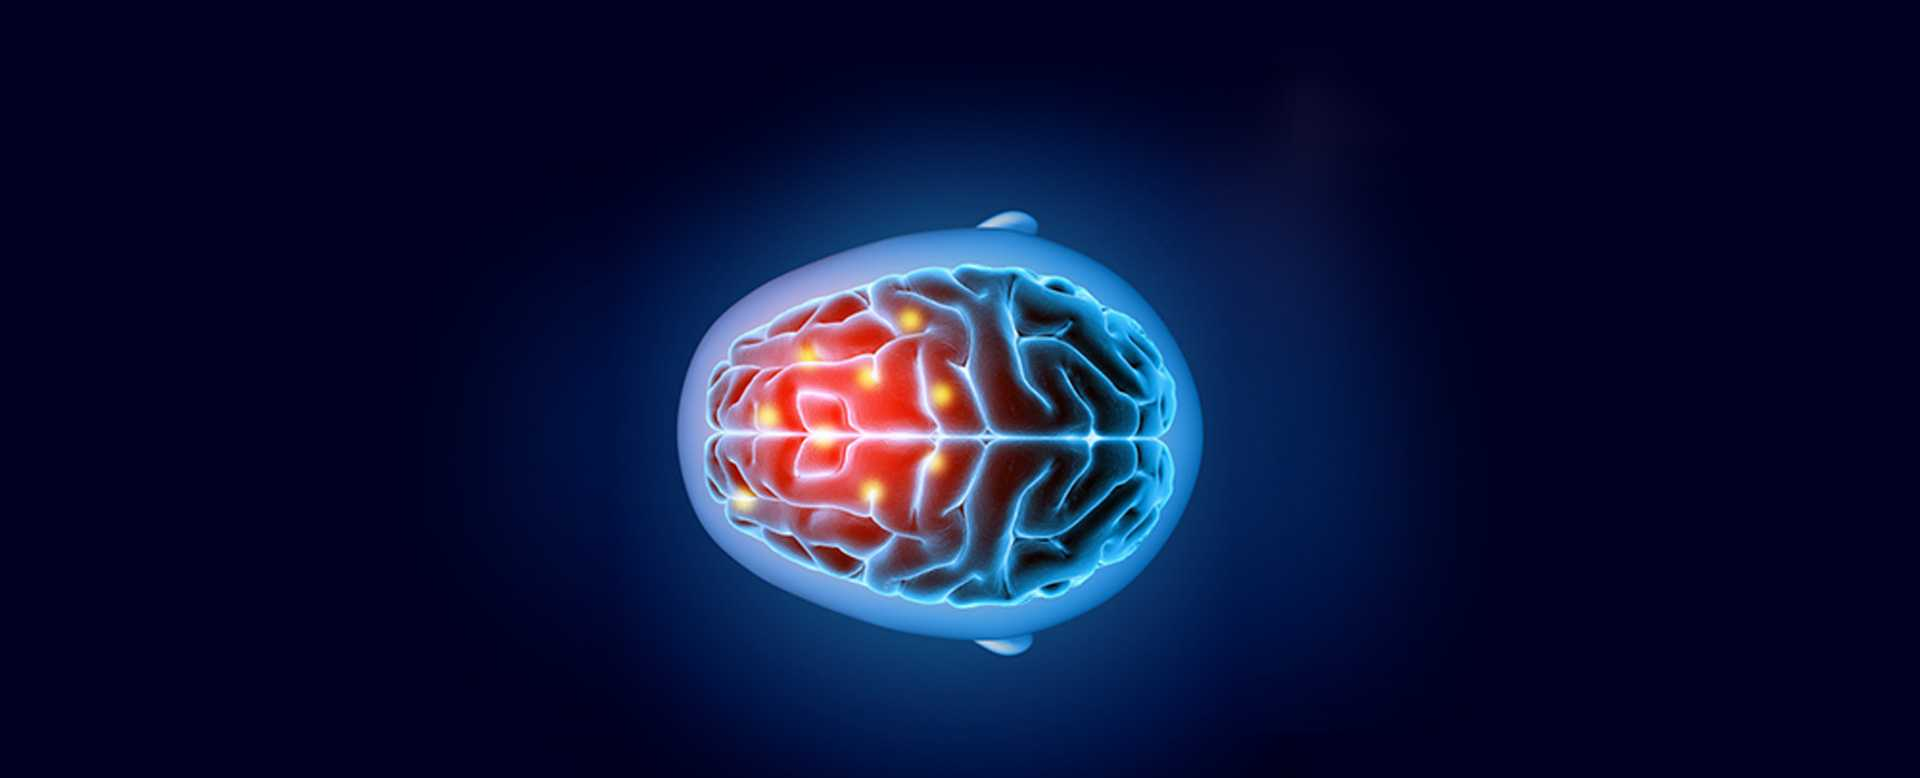 Why Medicate Change In Brain Due To Meditation, Home of Wellness